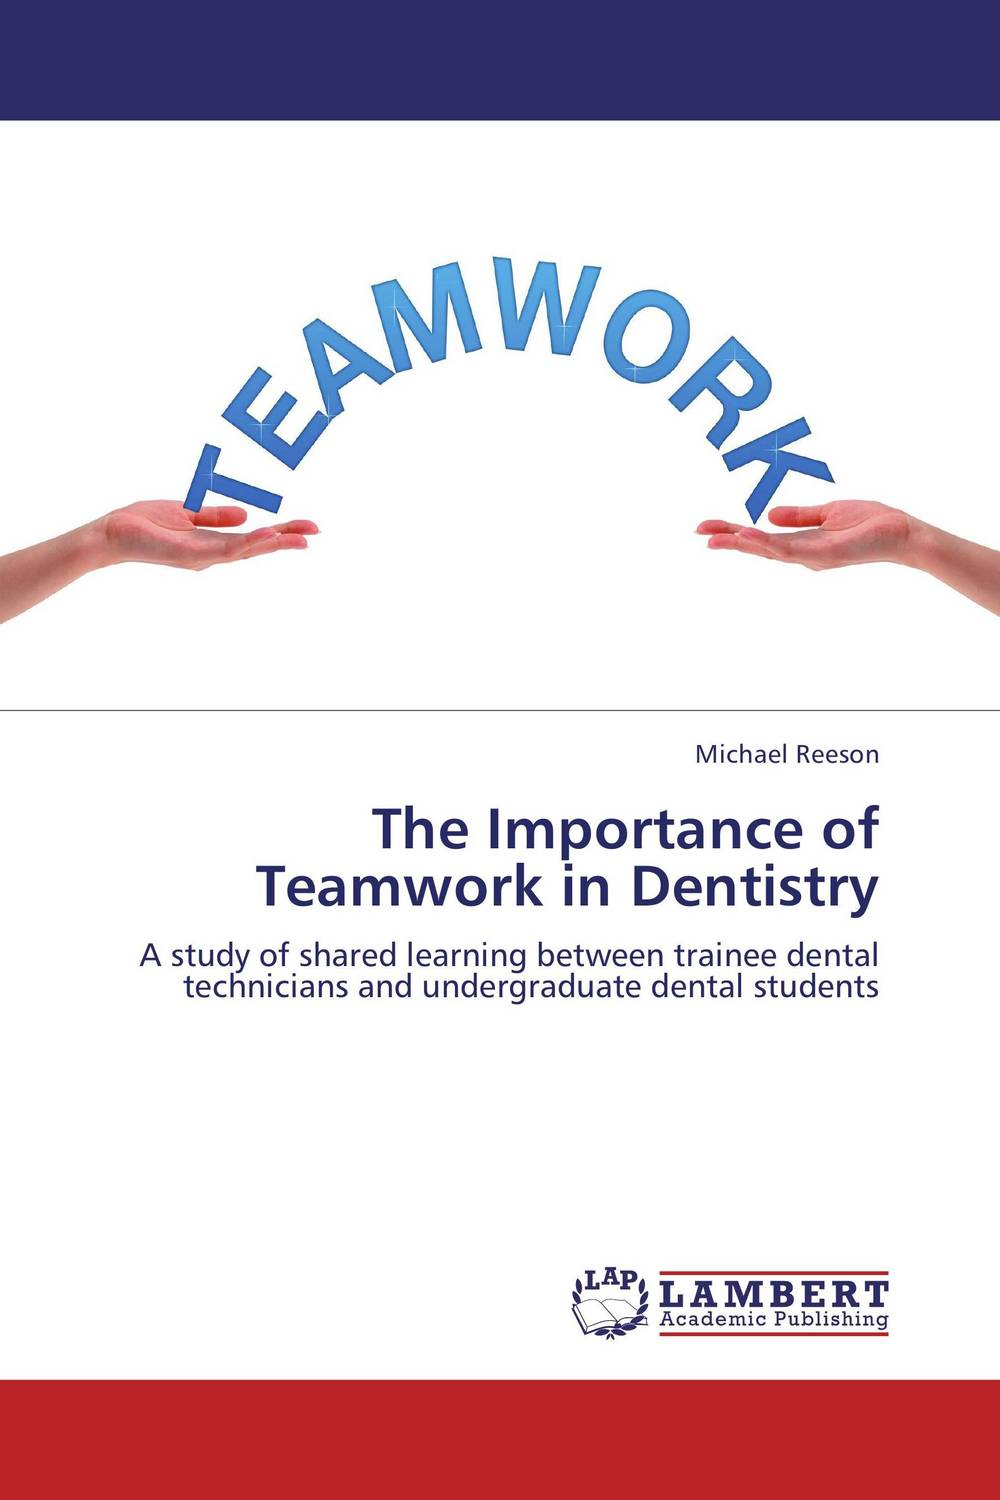 The Importance of Teamwork in Dentistry